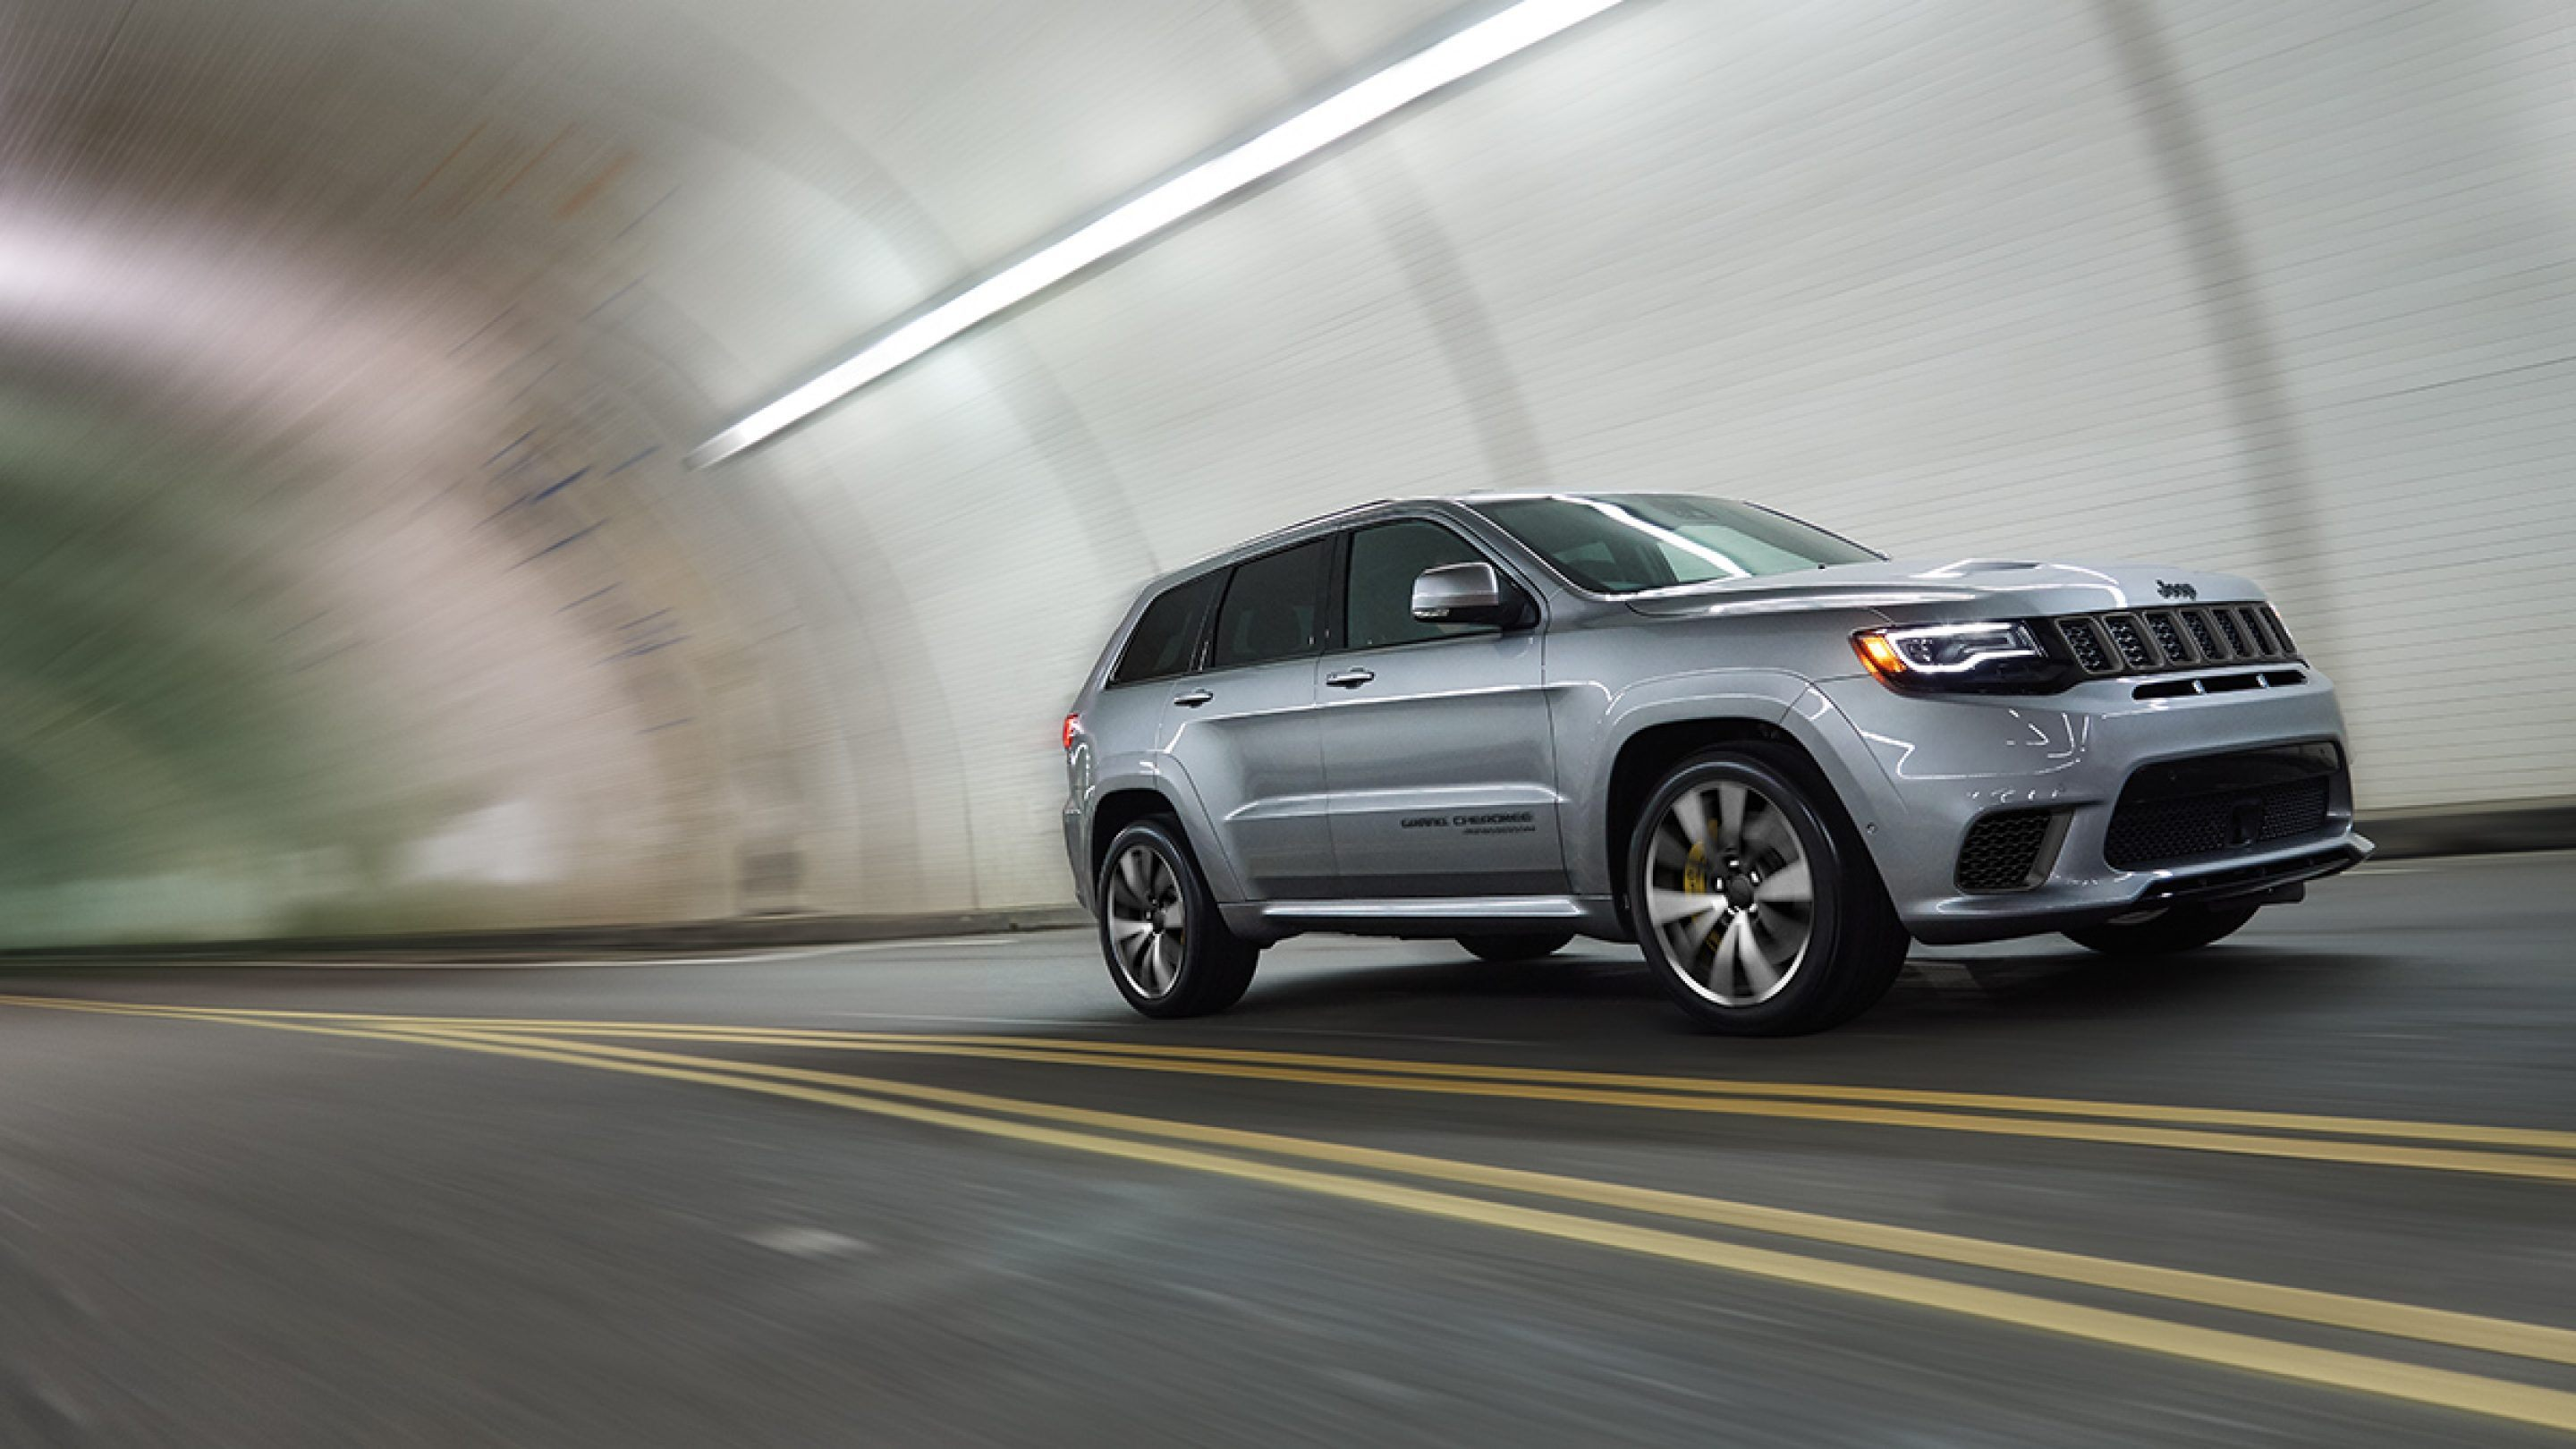 """7221222c66 His first thoughts on the 8-speed automatic transmission were that it is  """"outstanding,"""" smooth, and efficient. He rated the brakes as neither too  sensitive ..."""